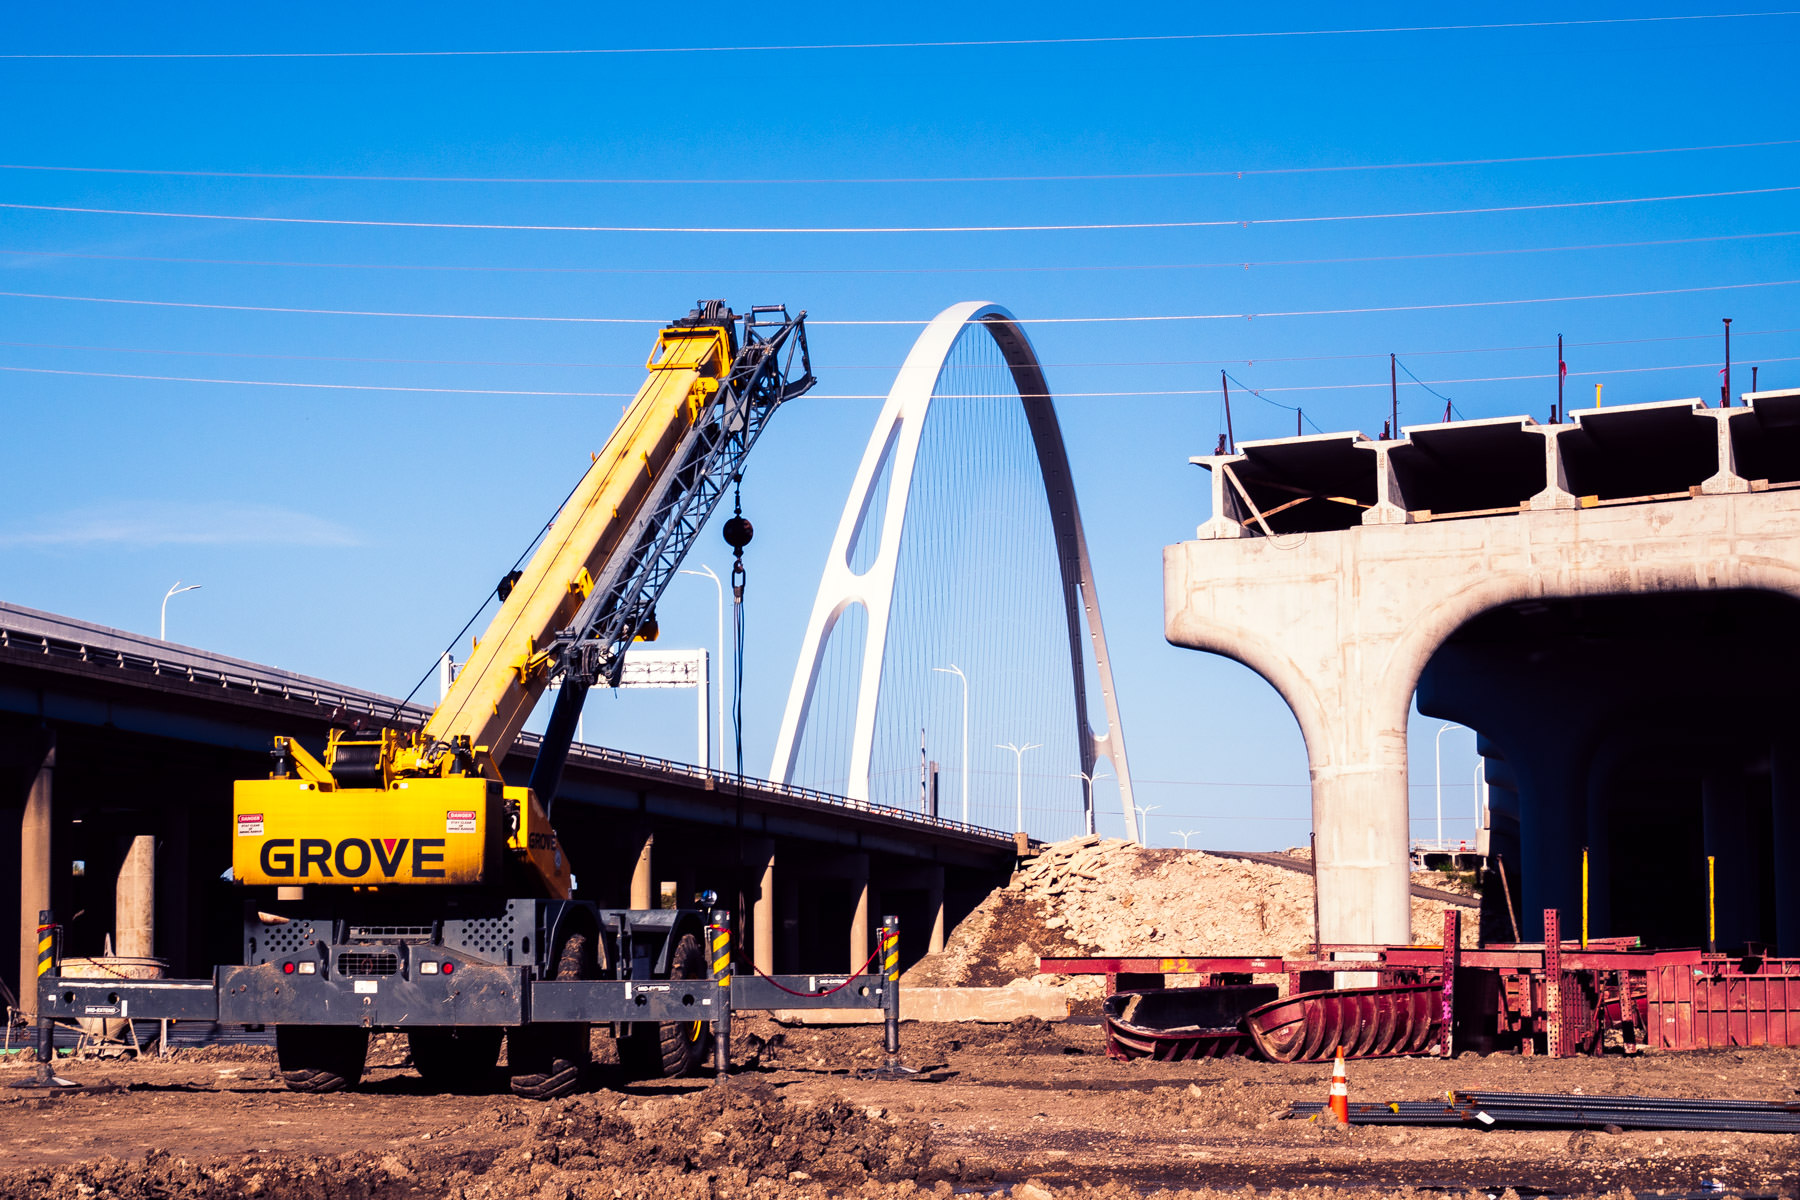 The first arch of Dallas' Margaret McDermott Bridge rises over the structure's construction site on the banks of the Trinity River.